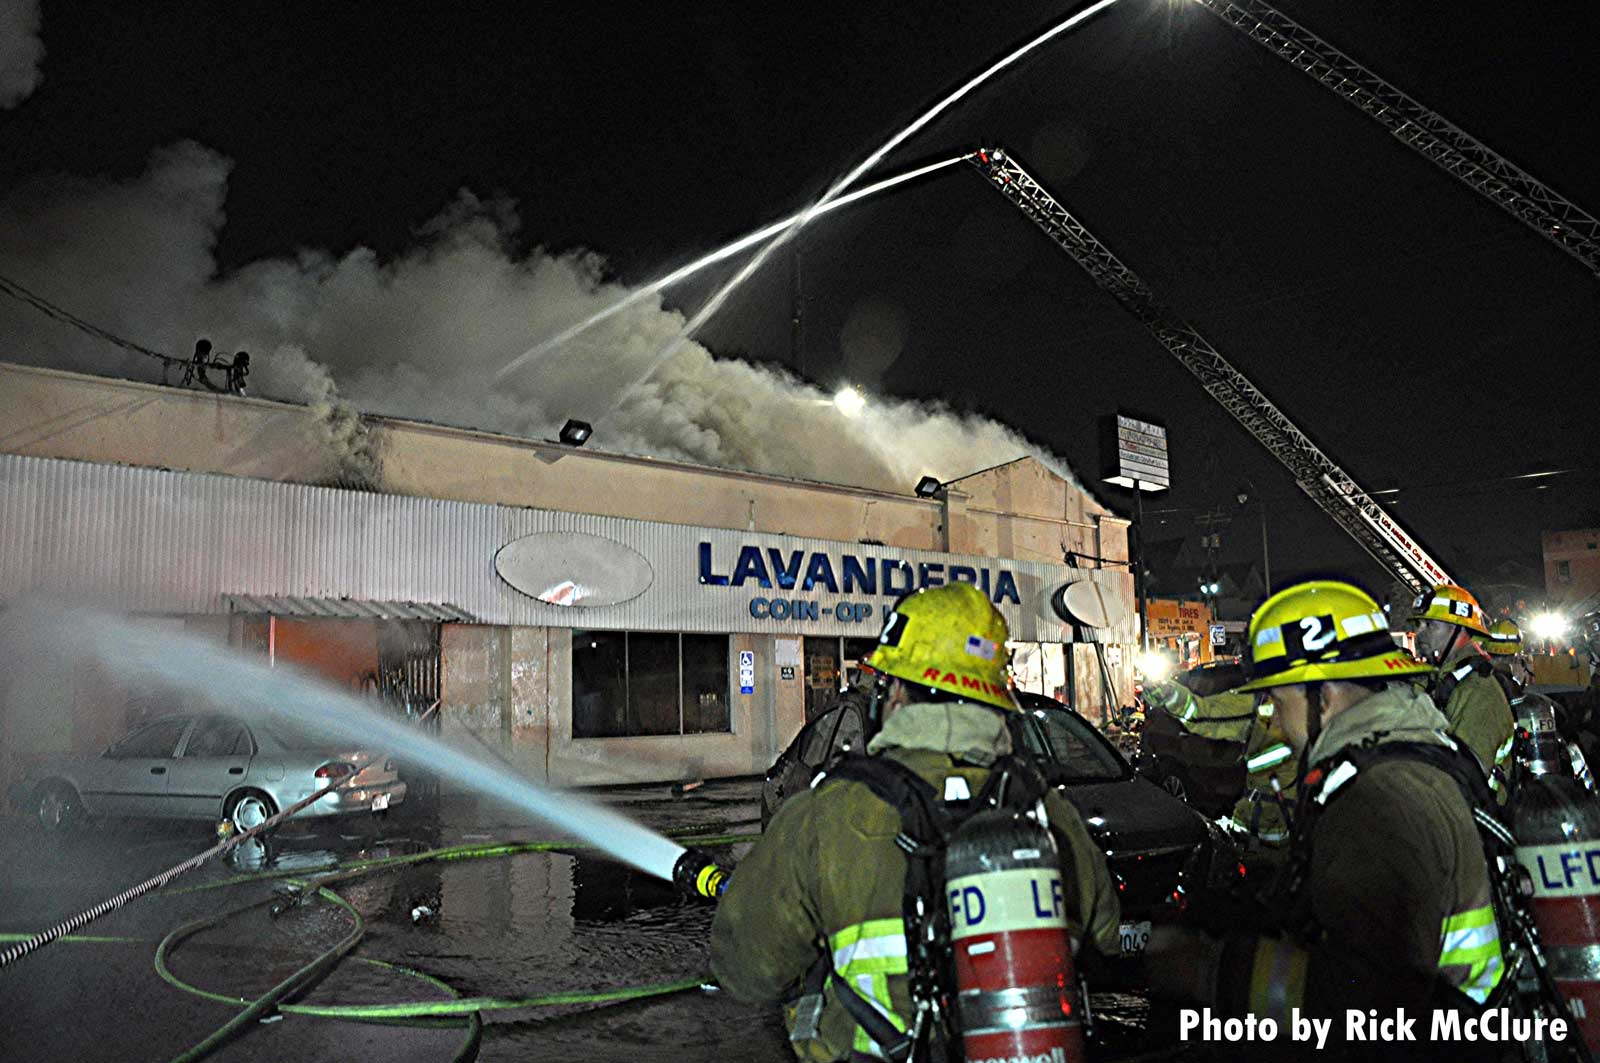 LAFD firefighters and streams at large fire